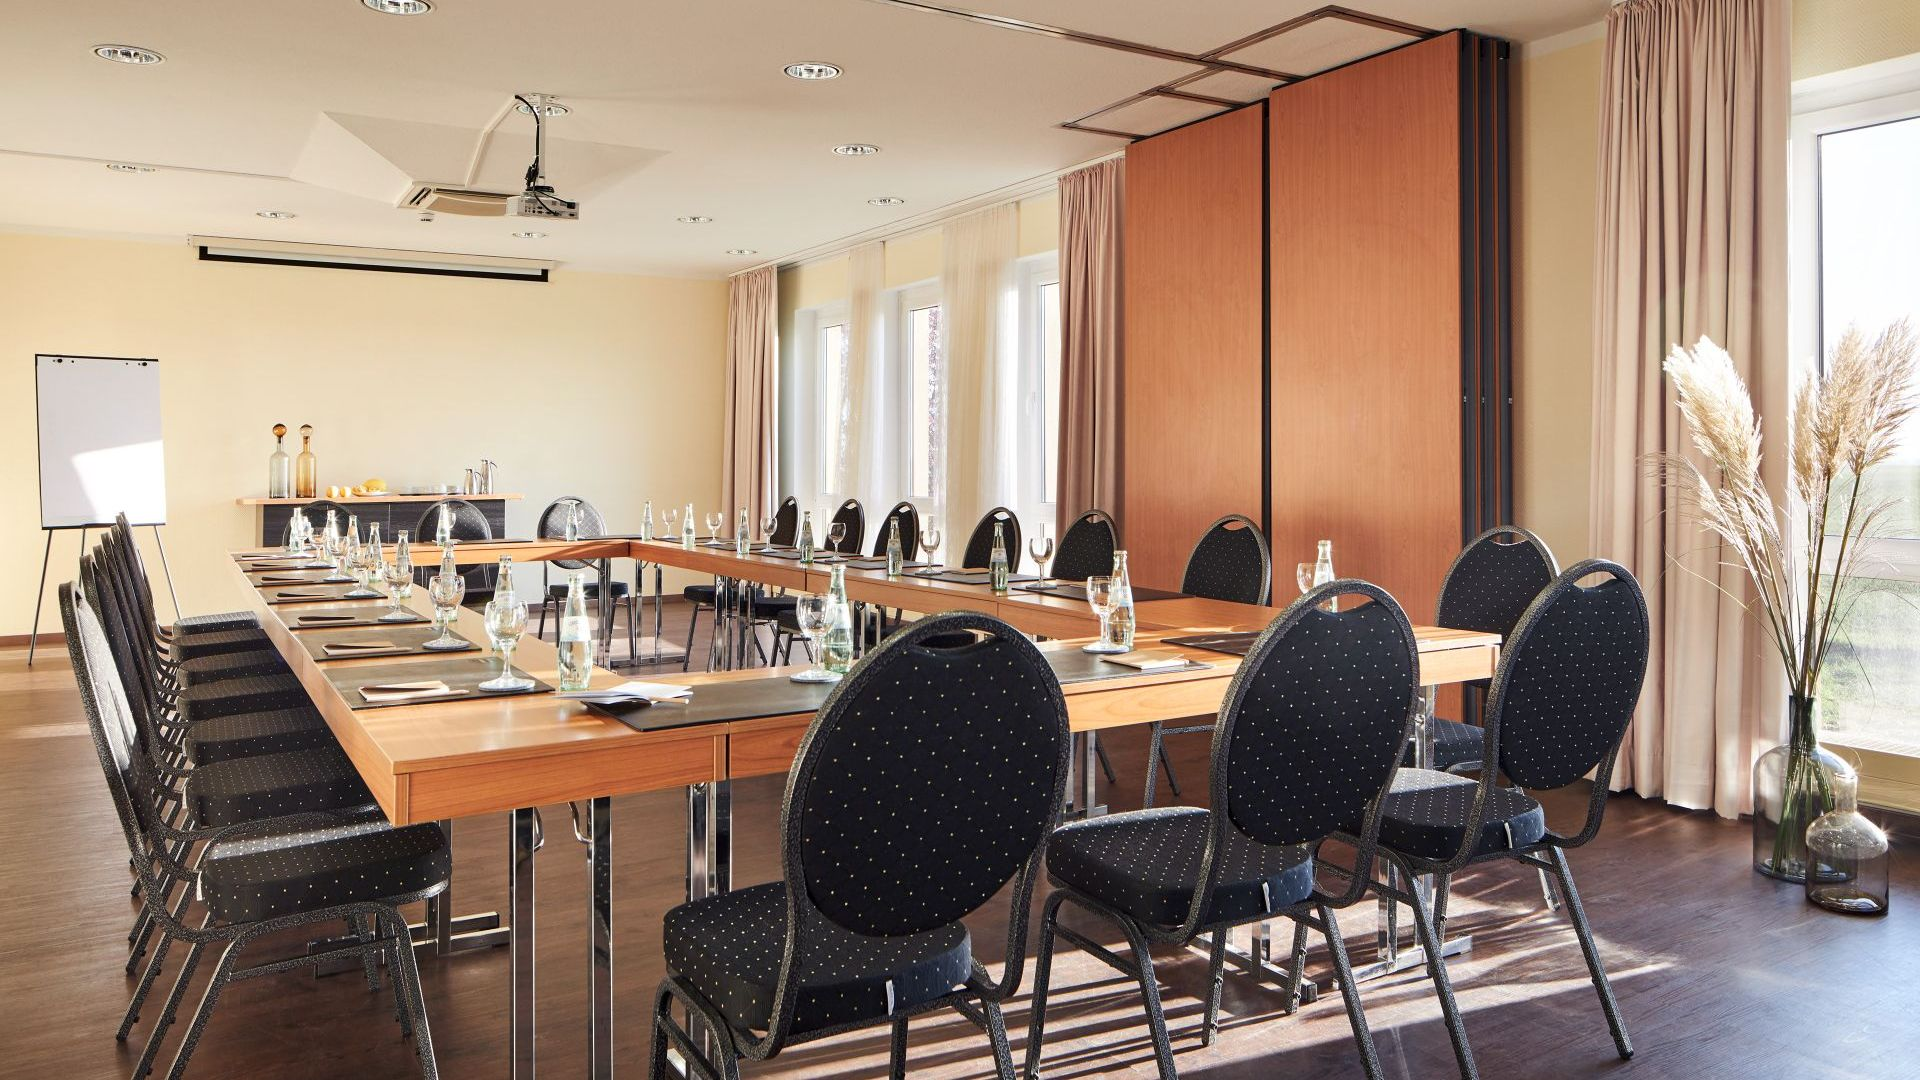 Classik_Hotel_Collection_Magdeburg_Meeting_Room_01_Web